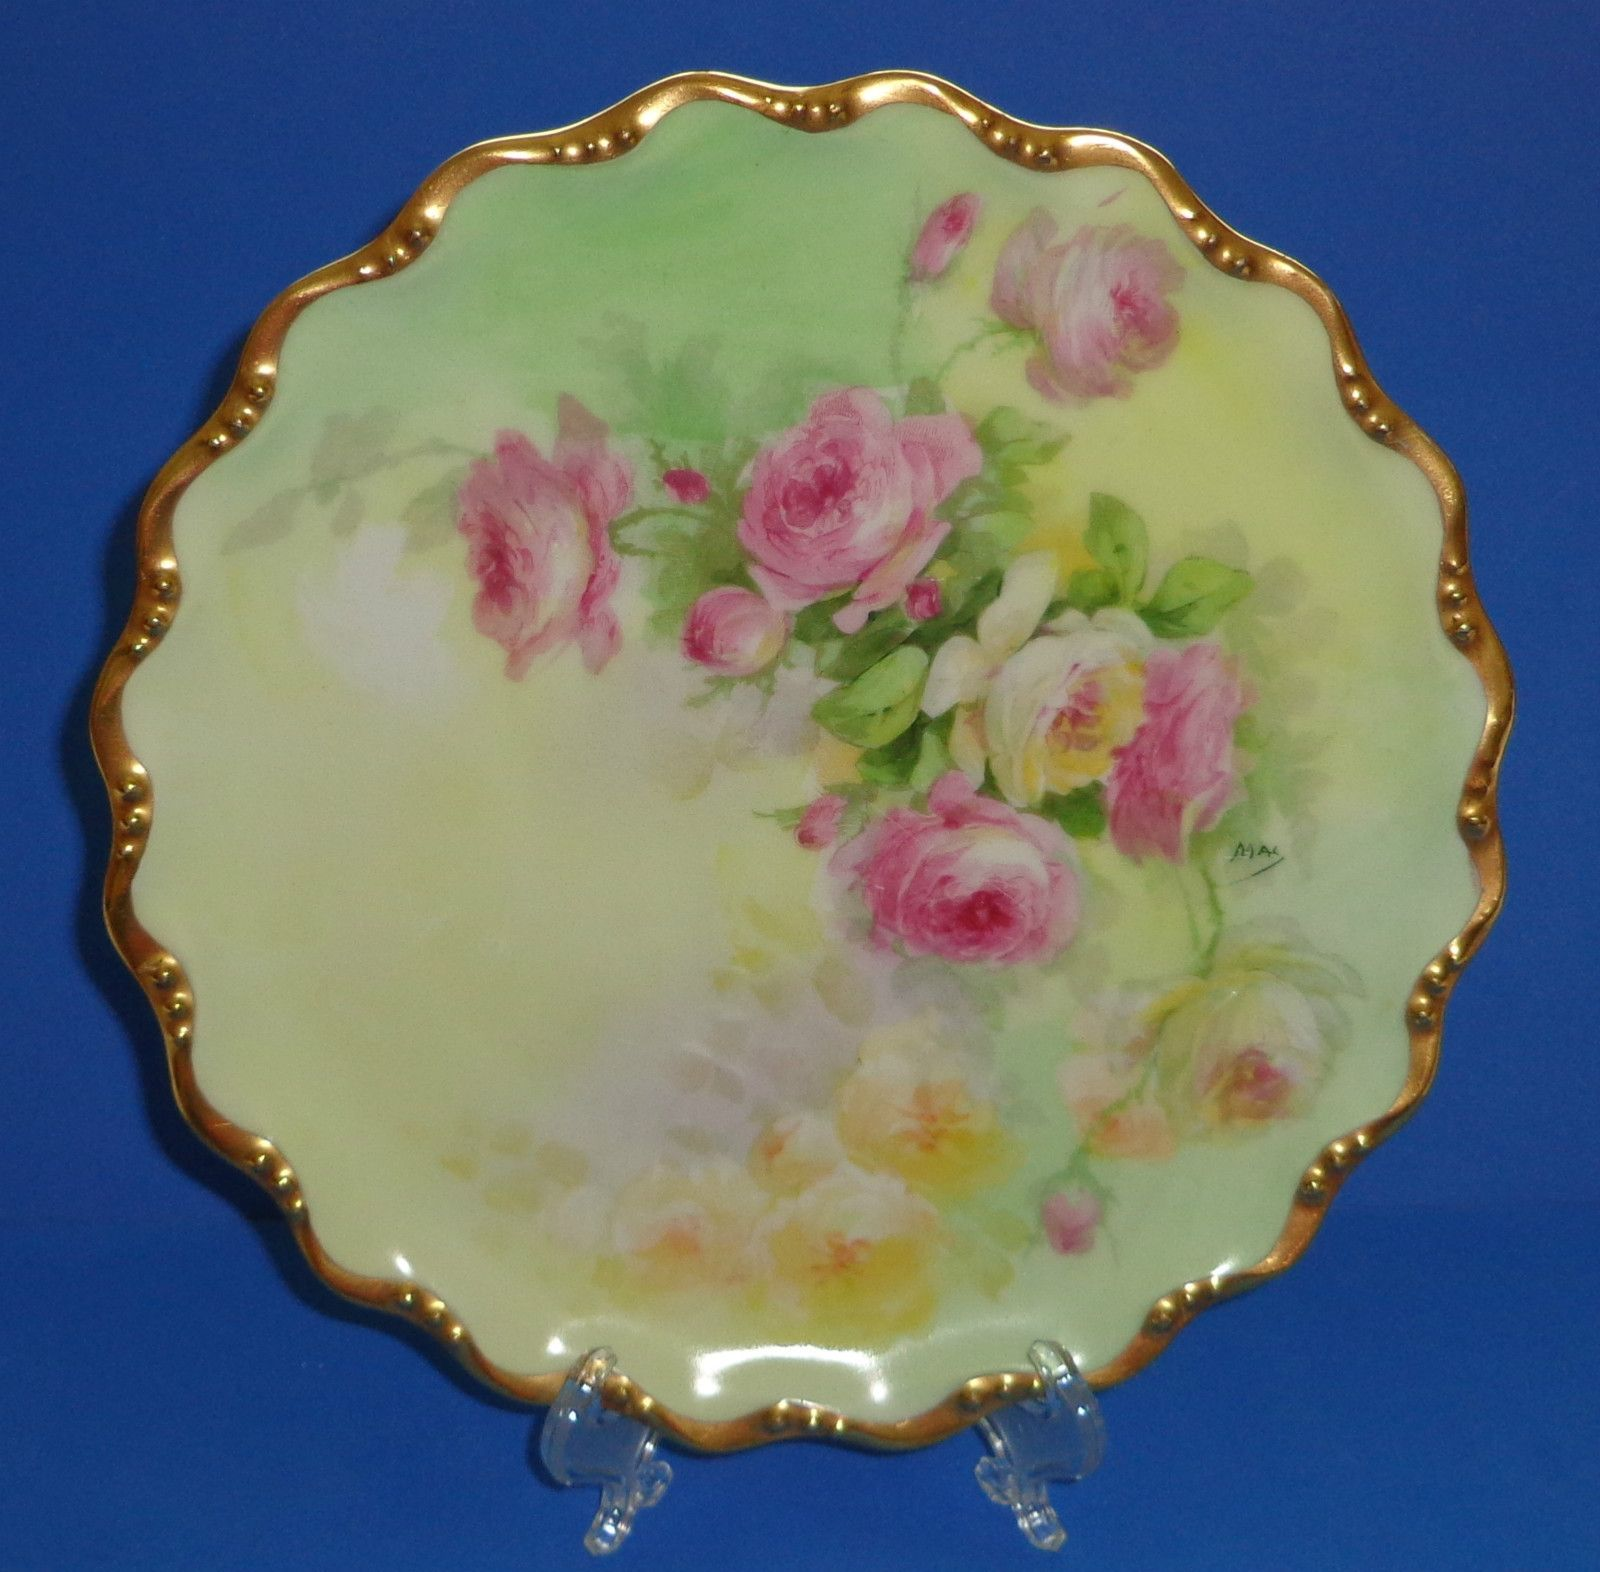 Antique limoges porcelain plate coronet roses hand painted signed ...